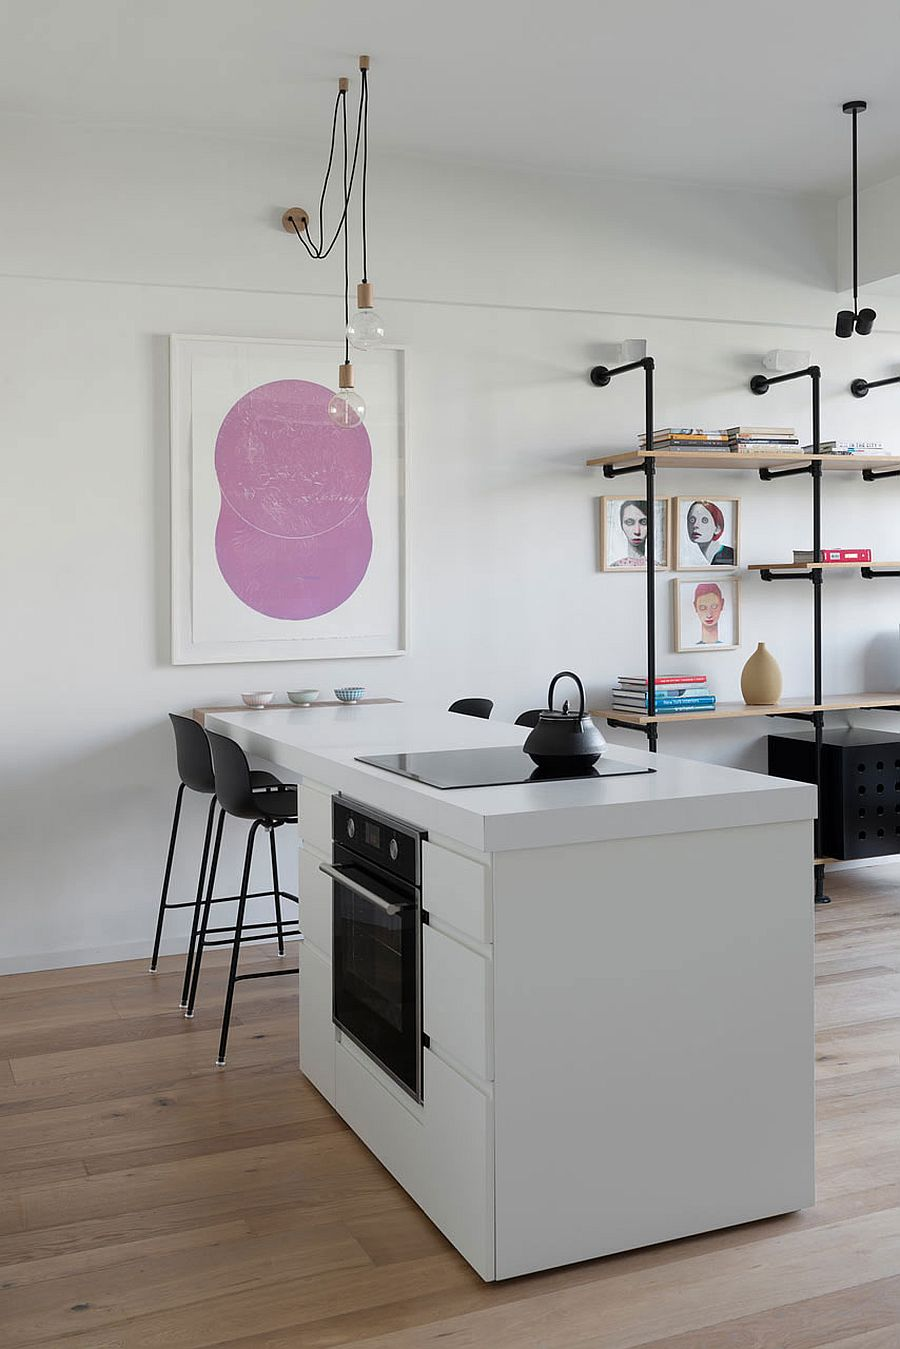 Small kitchen of the open plan living area in white